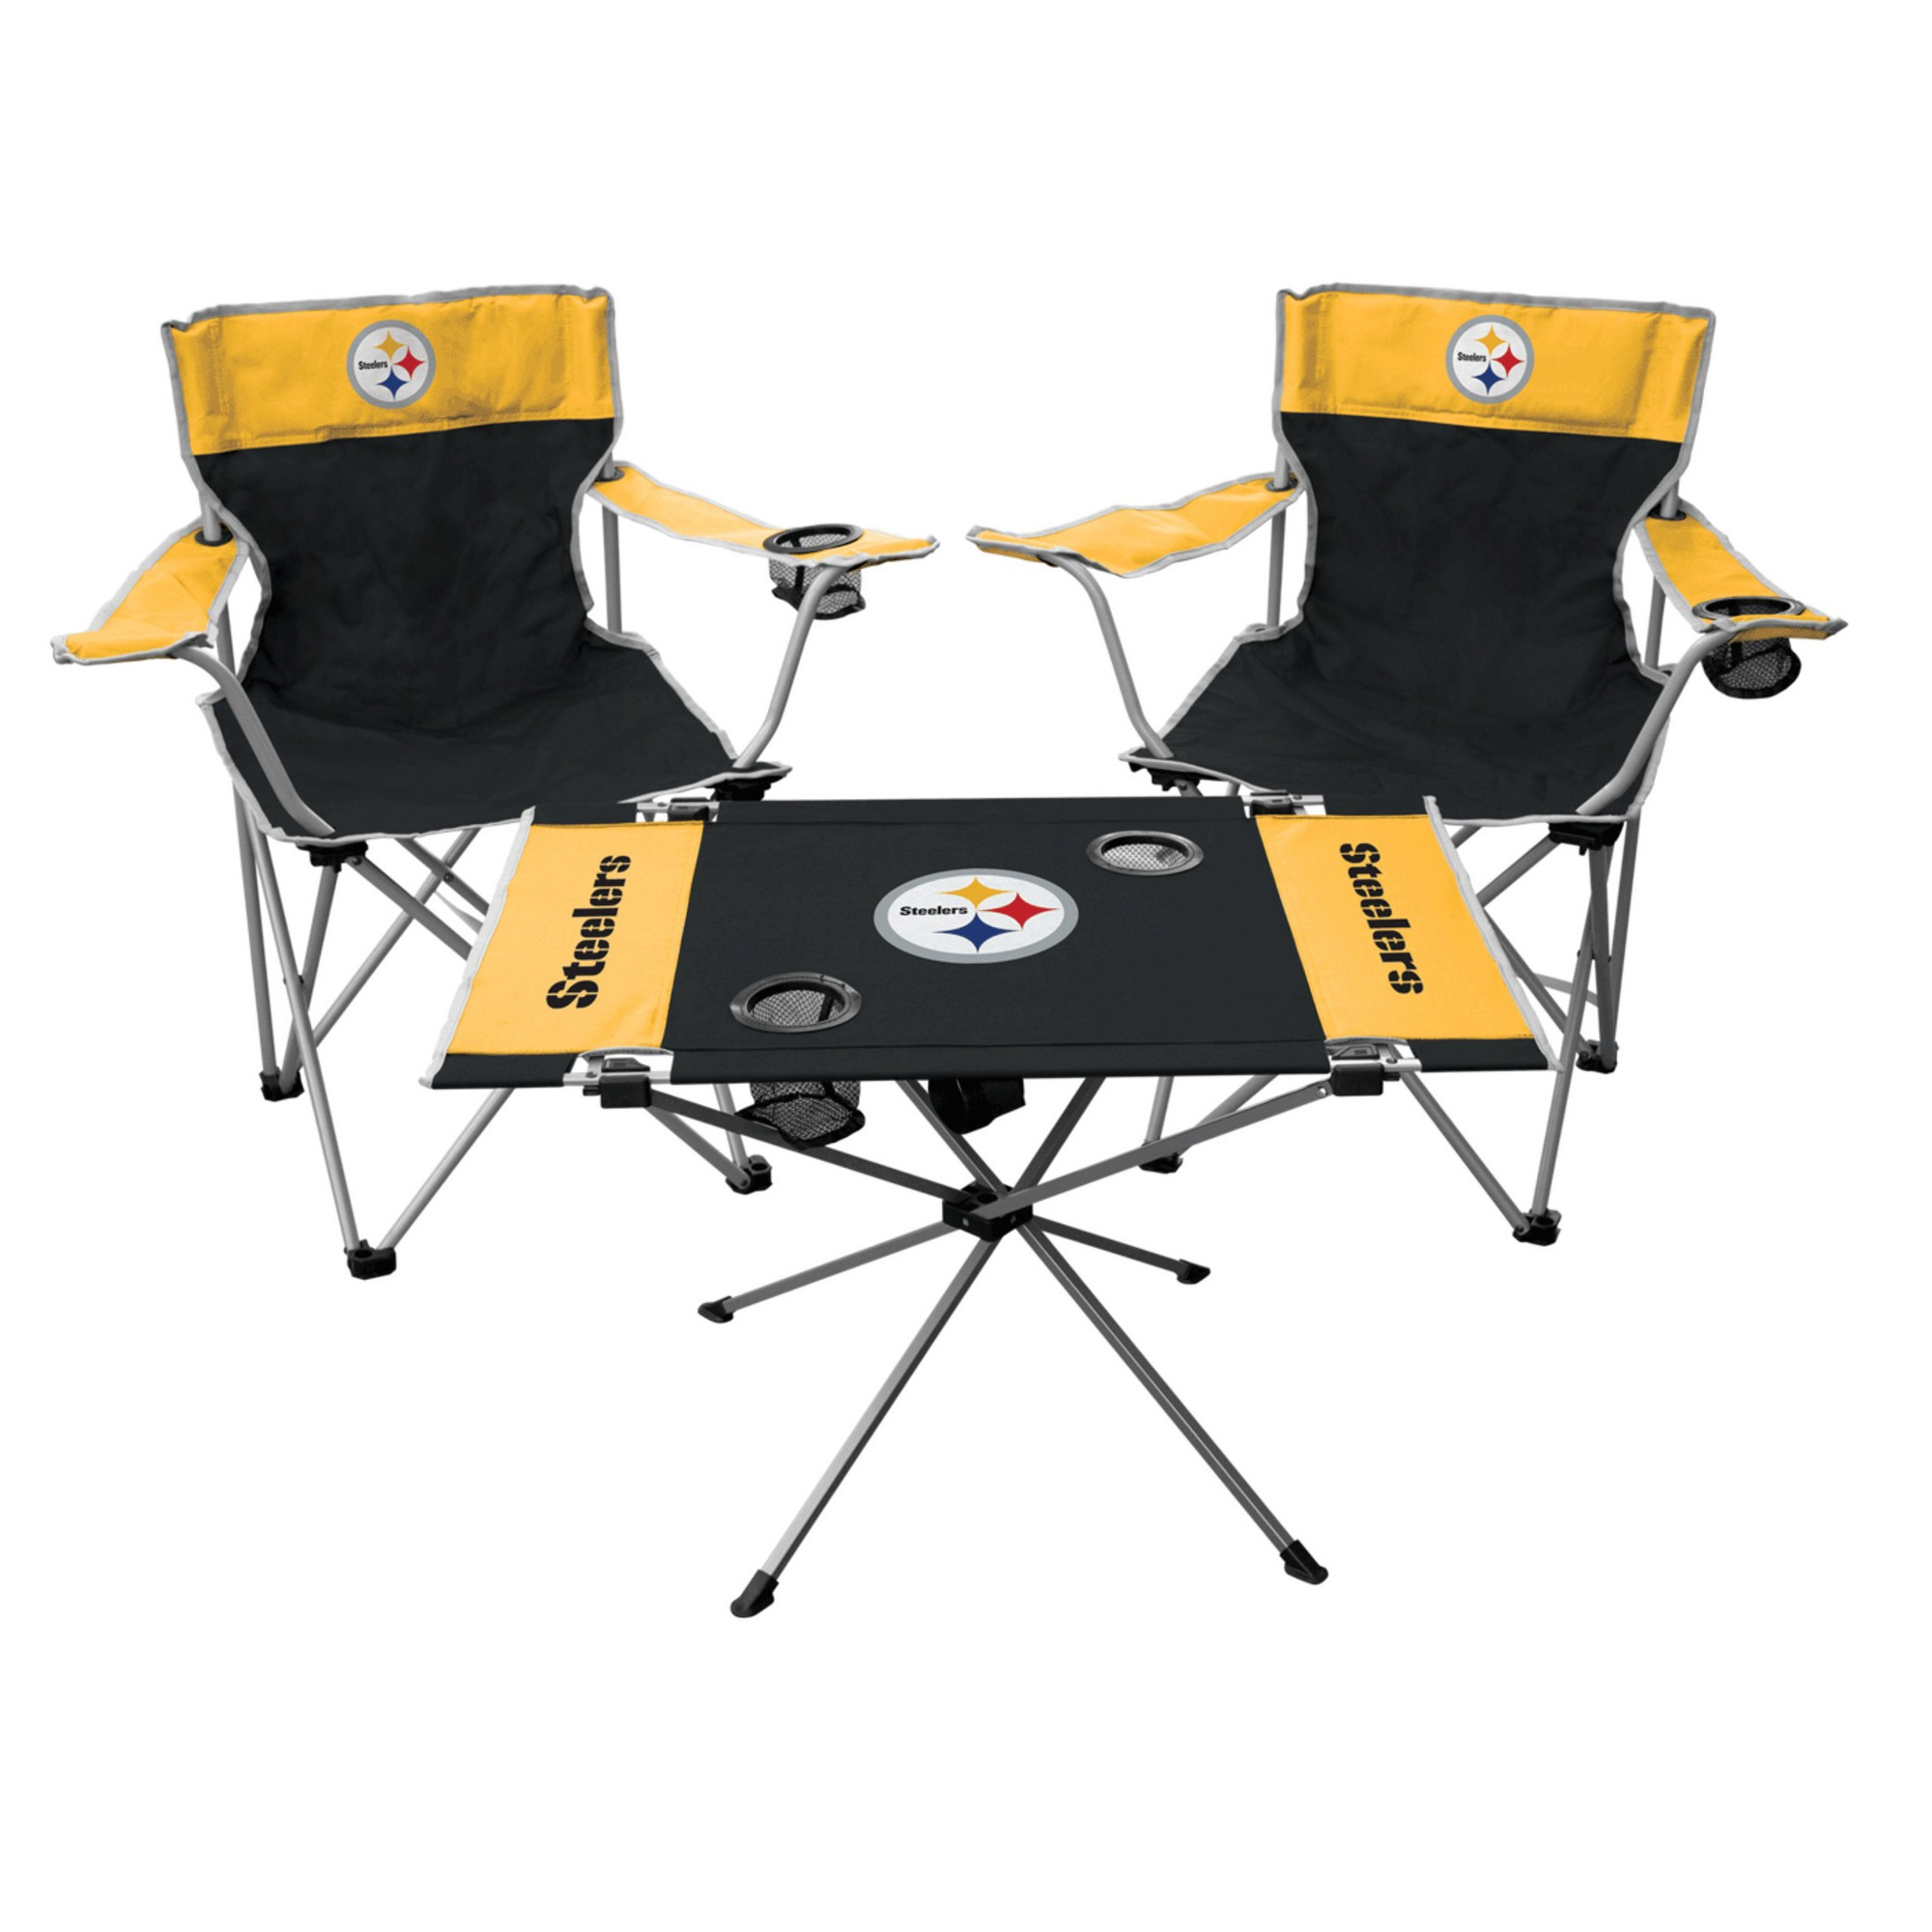 Delightful NFL Pittsburgh Steelers Rawlings Tailgate Kit   2 Chairs And Endzone Table